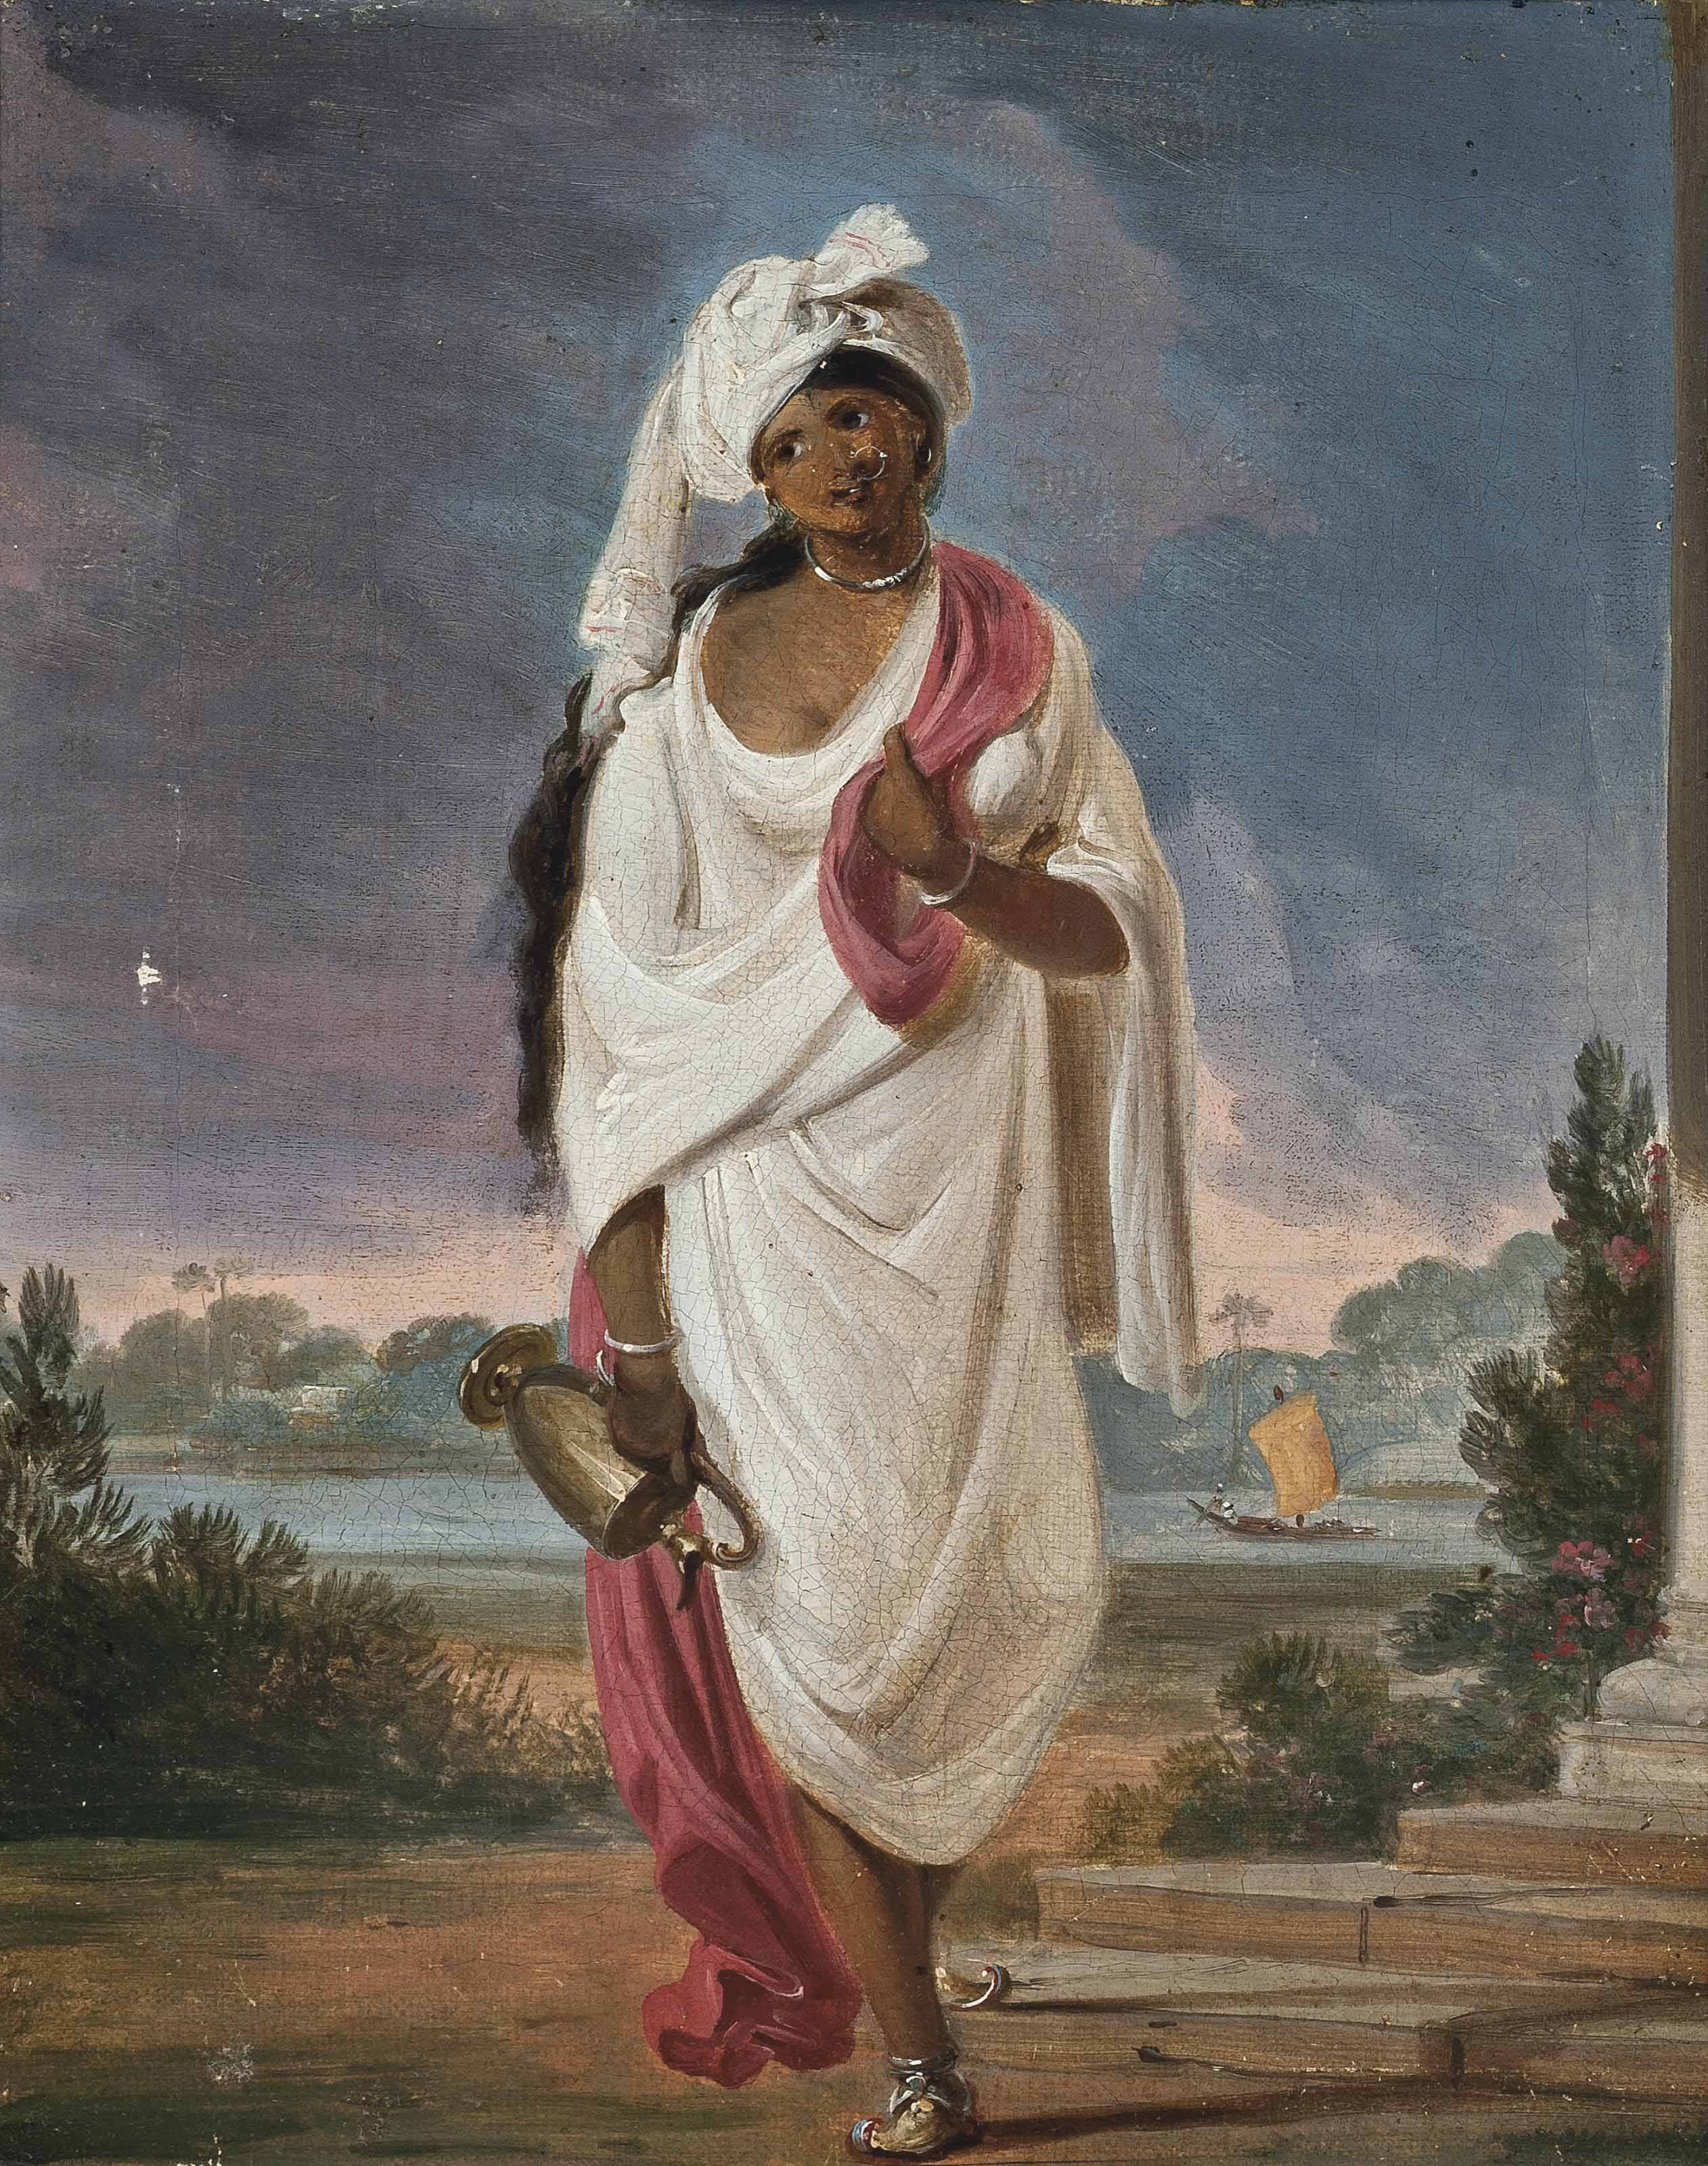 Indian woman with a river beyond